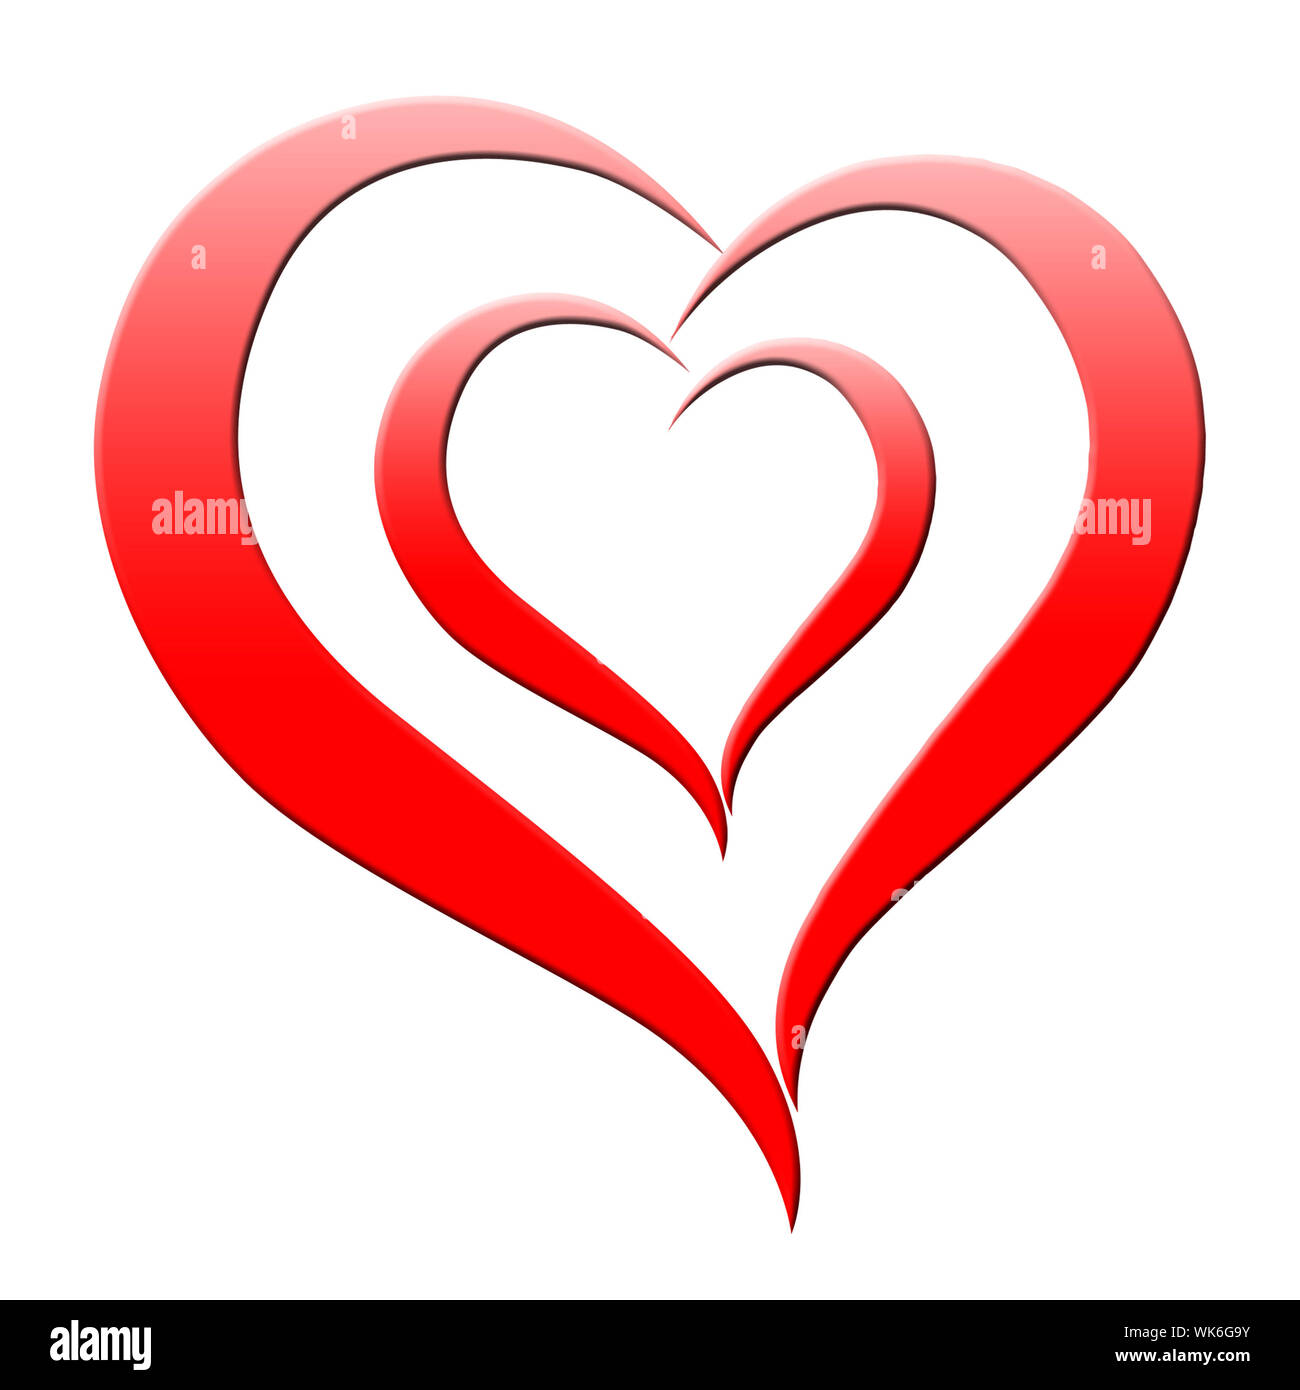 Red Heart Meaning Romanticism Passion And Amour Stock Photo Alamy